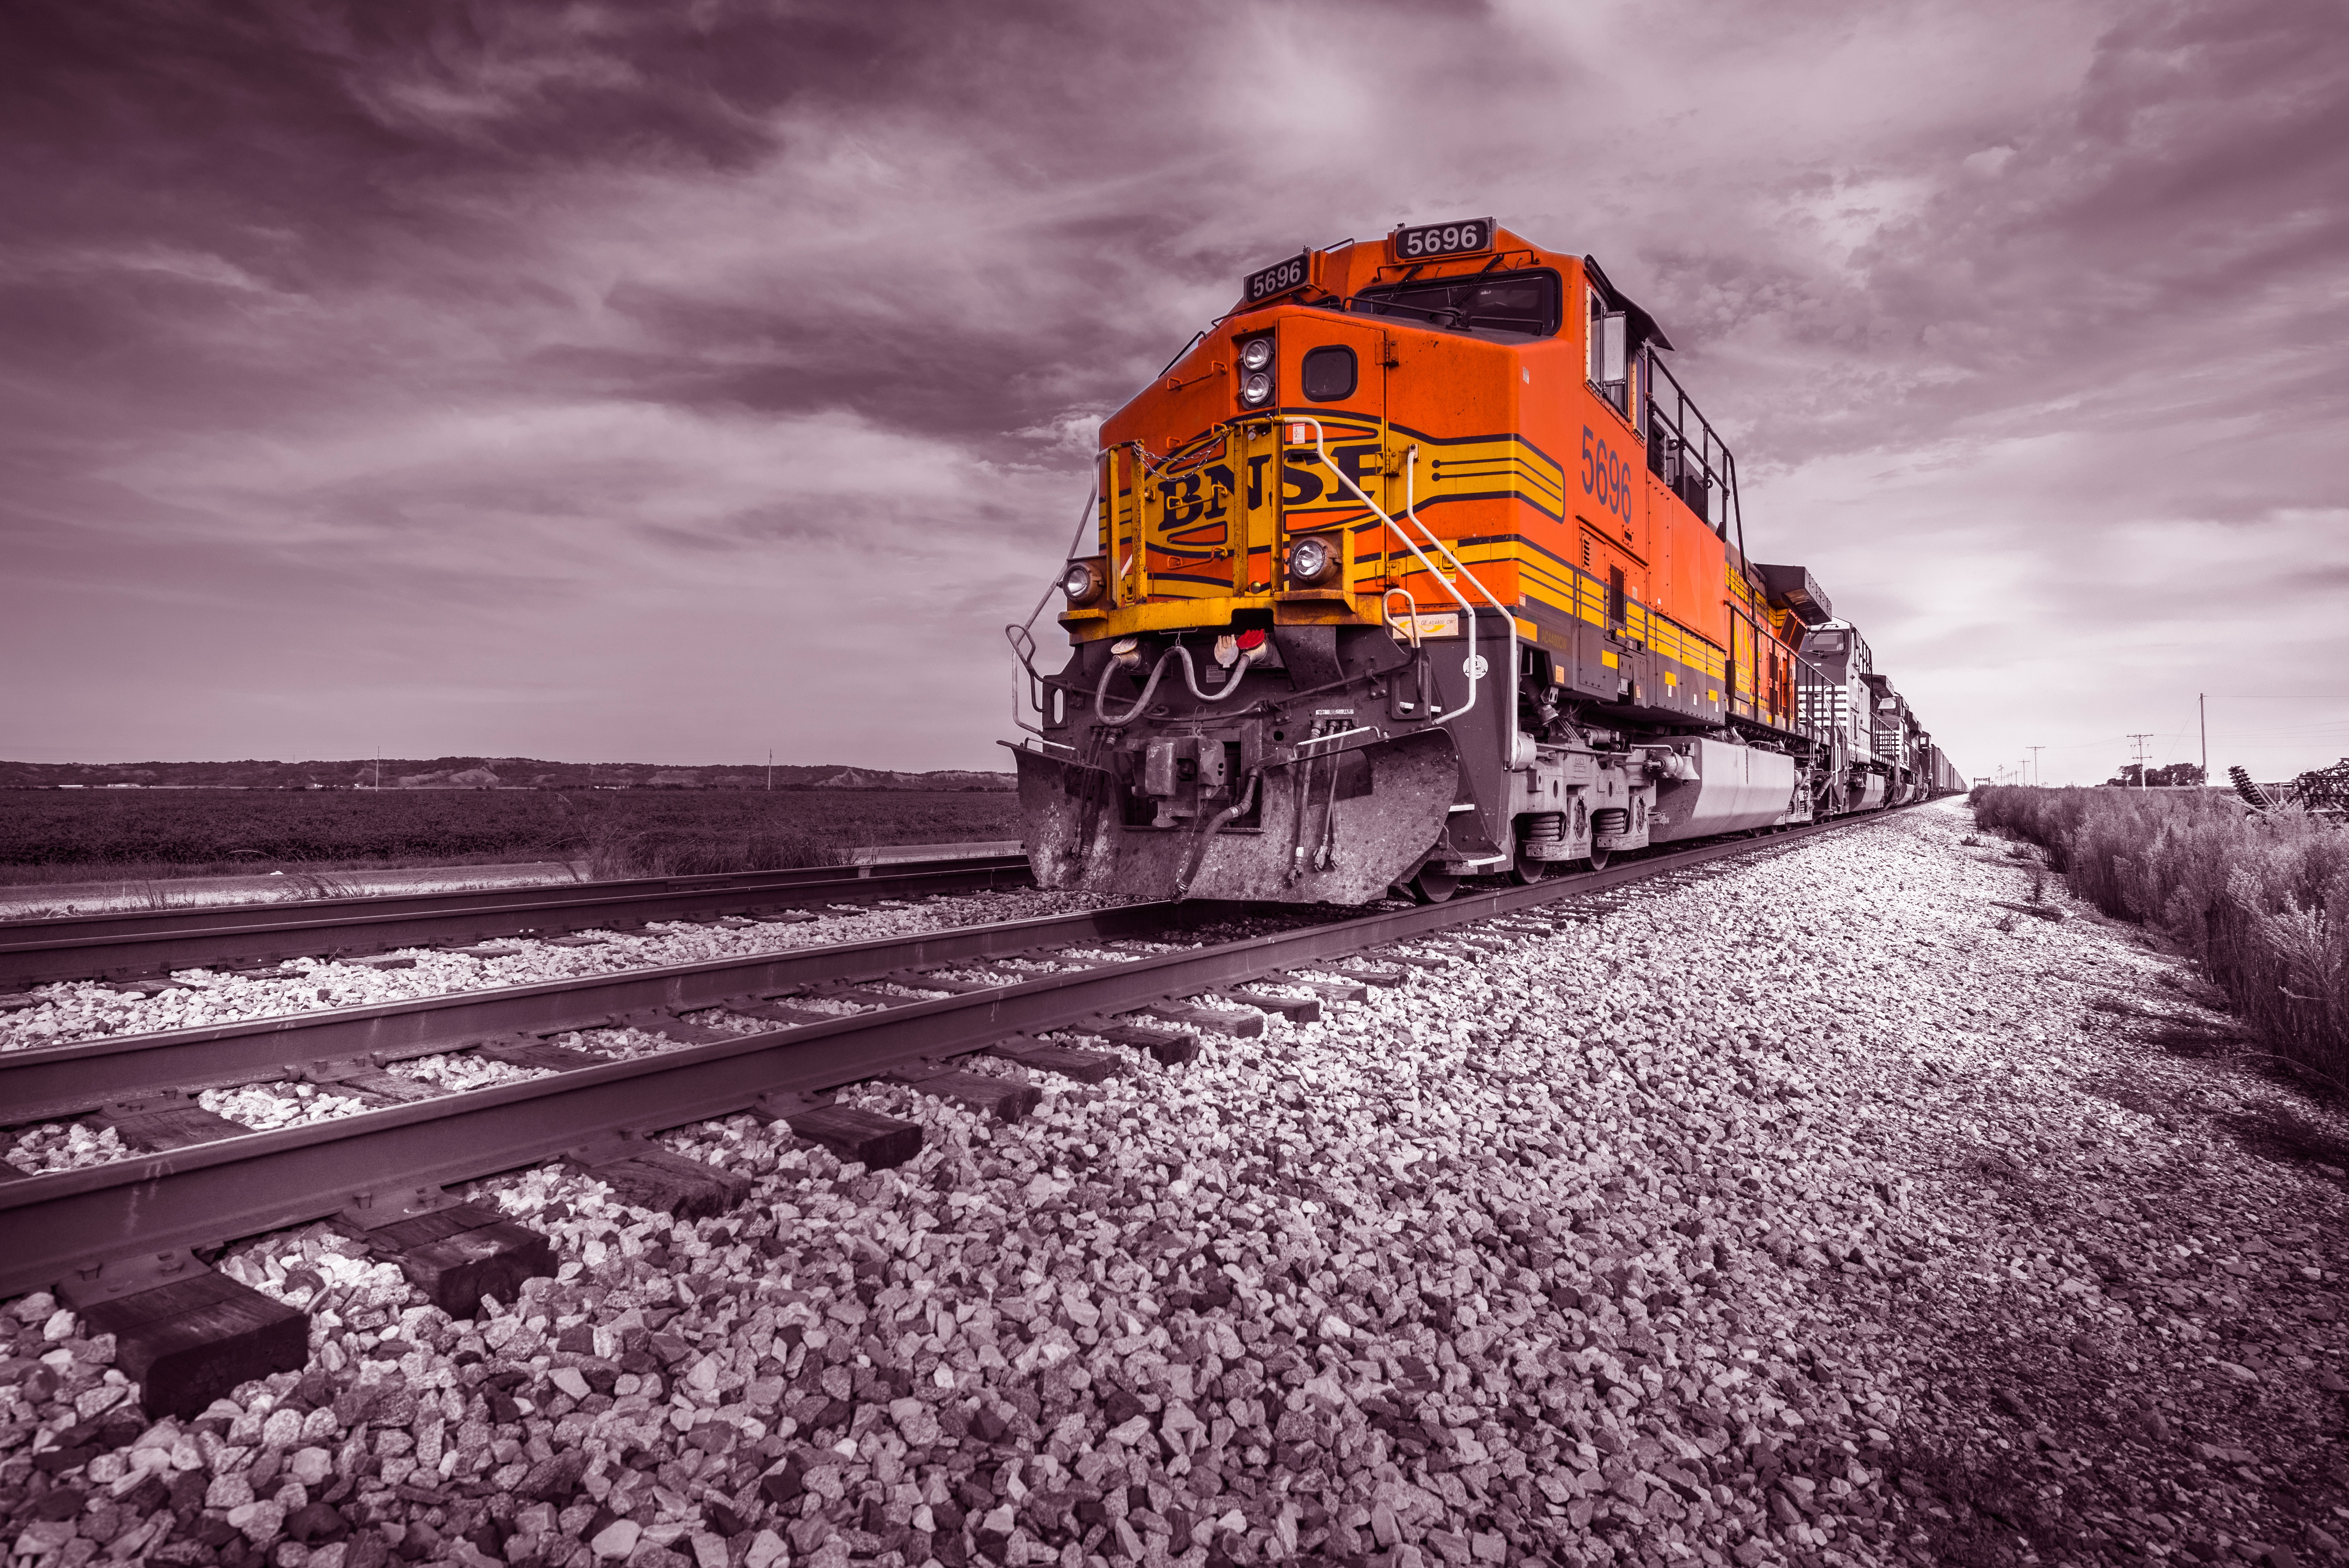 Train on track hd others 4k wallpapers images backgrounds photos and pictures - Background images 4k hd ...